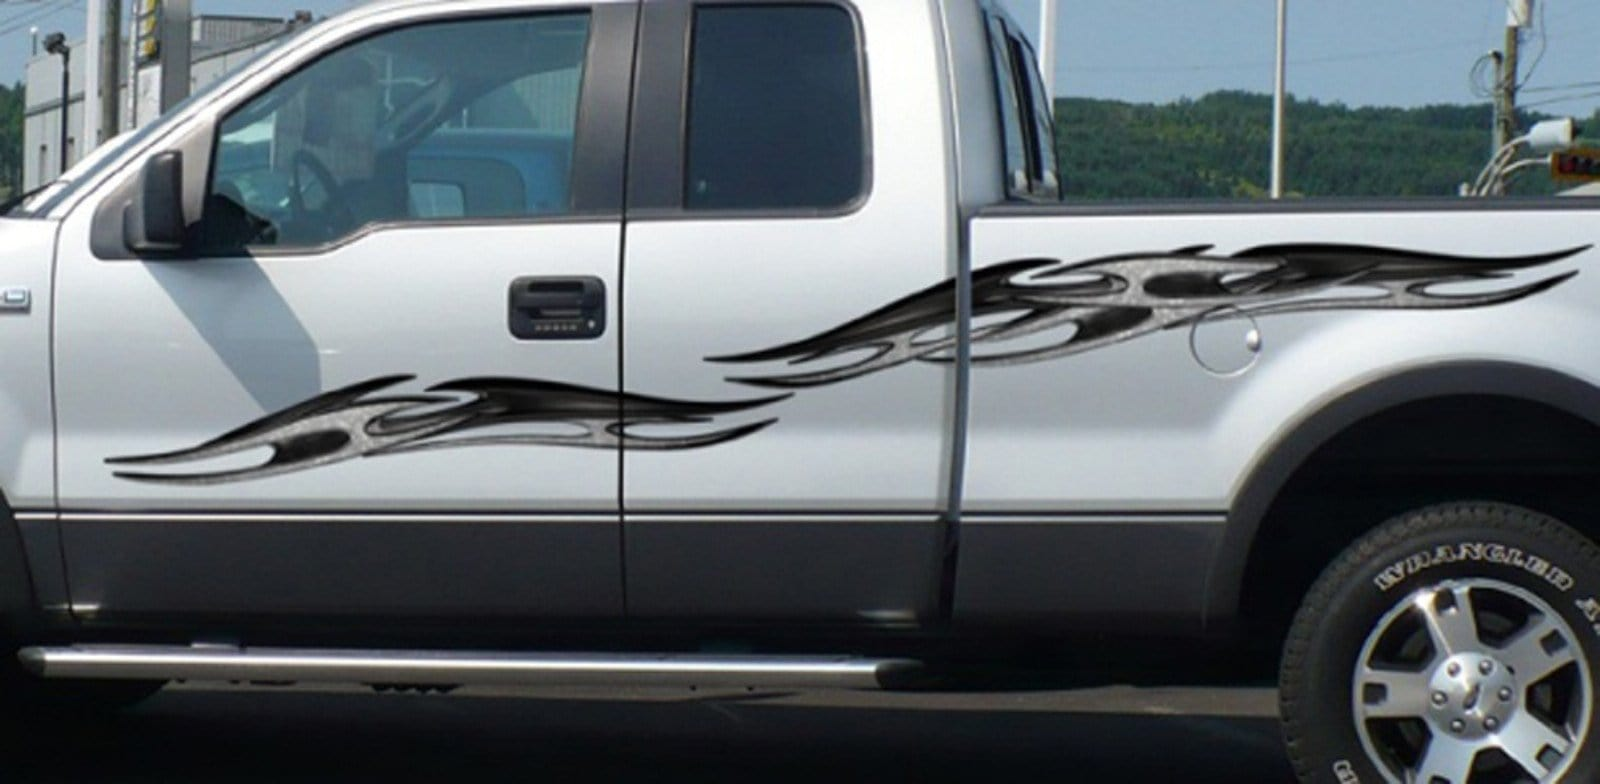 Tribal Vehicle Decals Truck Vinyl Graphics Car Accent